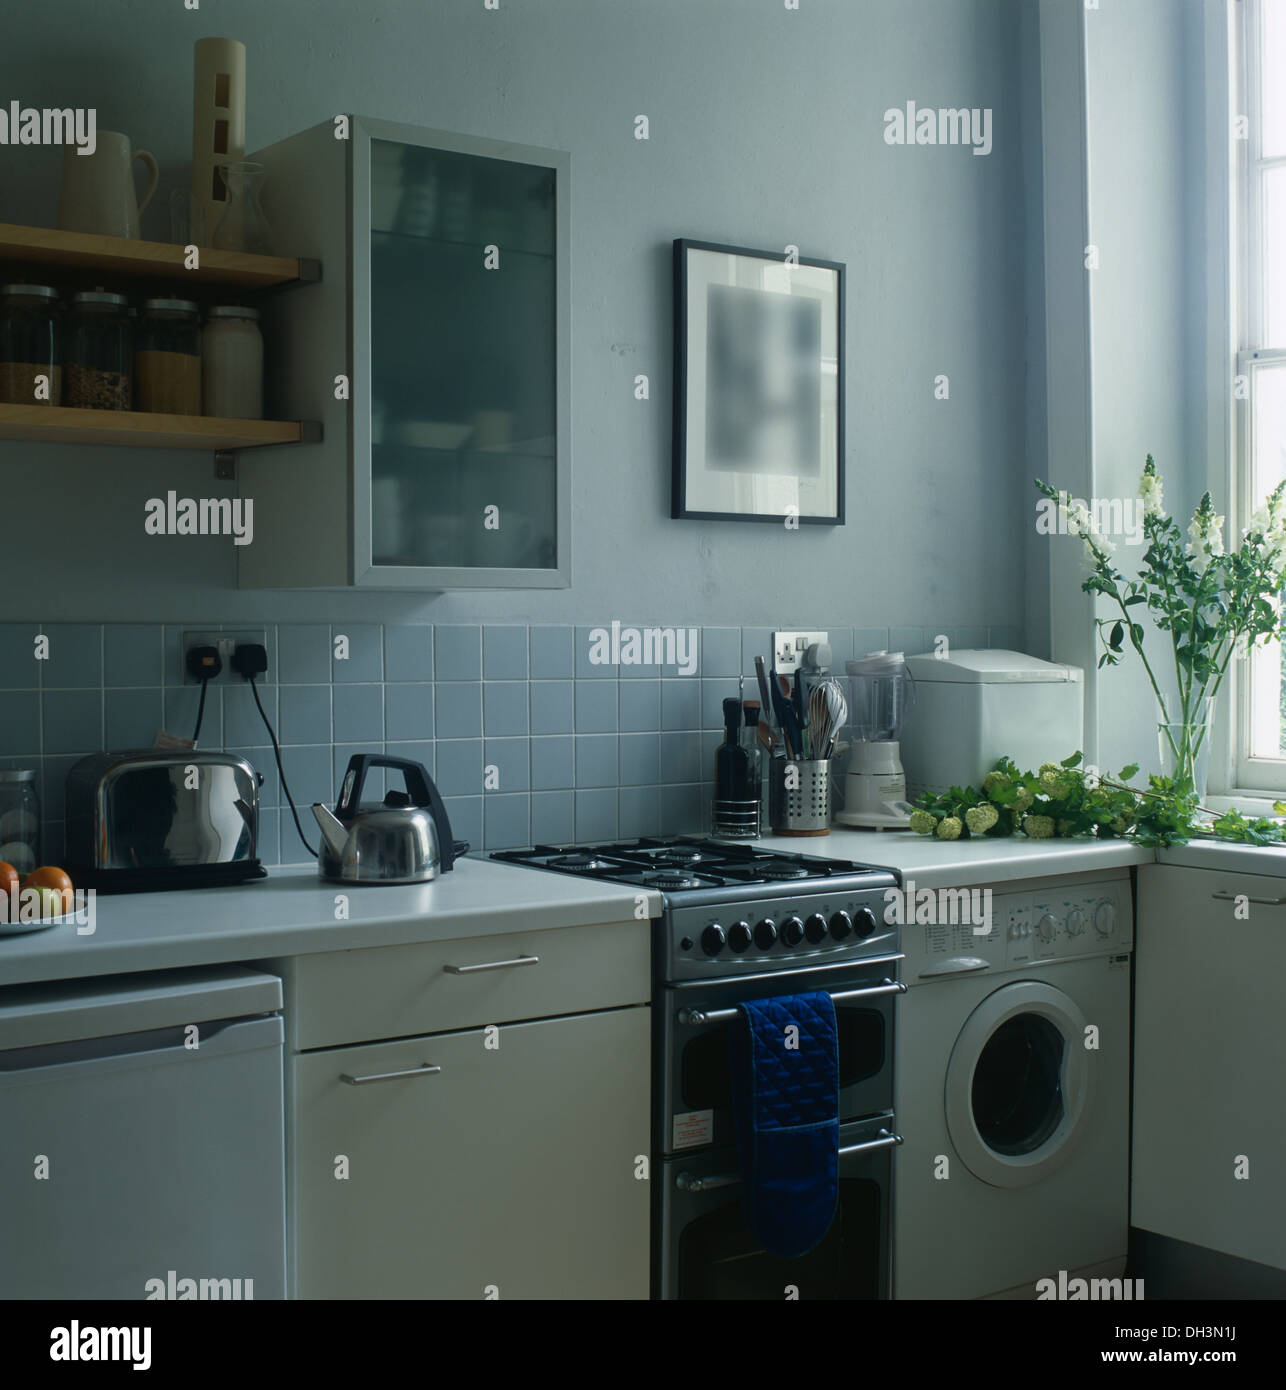 Opaque Glass Front Cabinet On Wall Above Gas Oven And Small Washing Machine  In Pale Blue